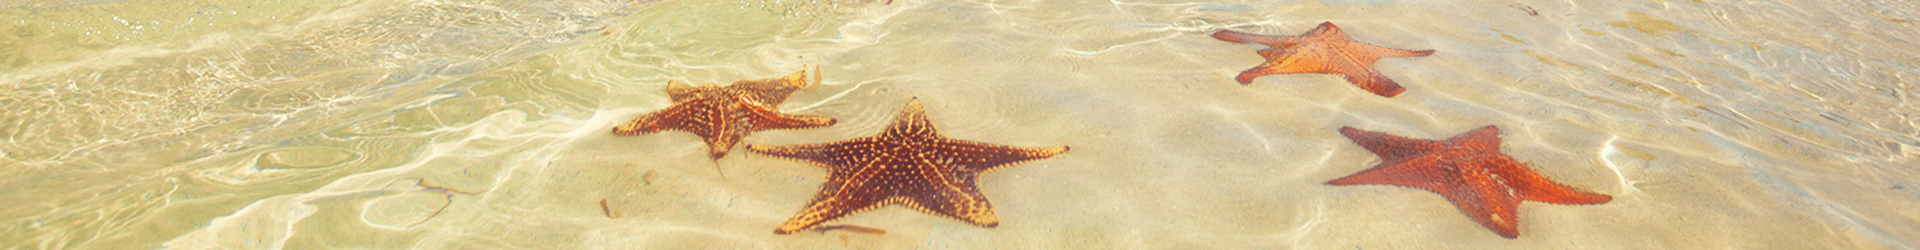 Slider-starfish-2